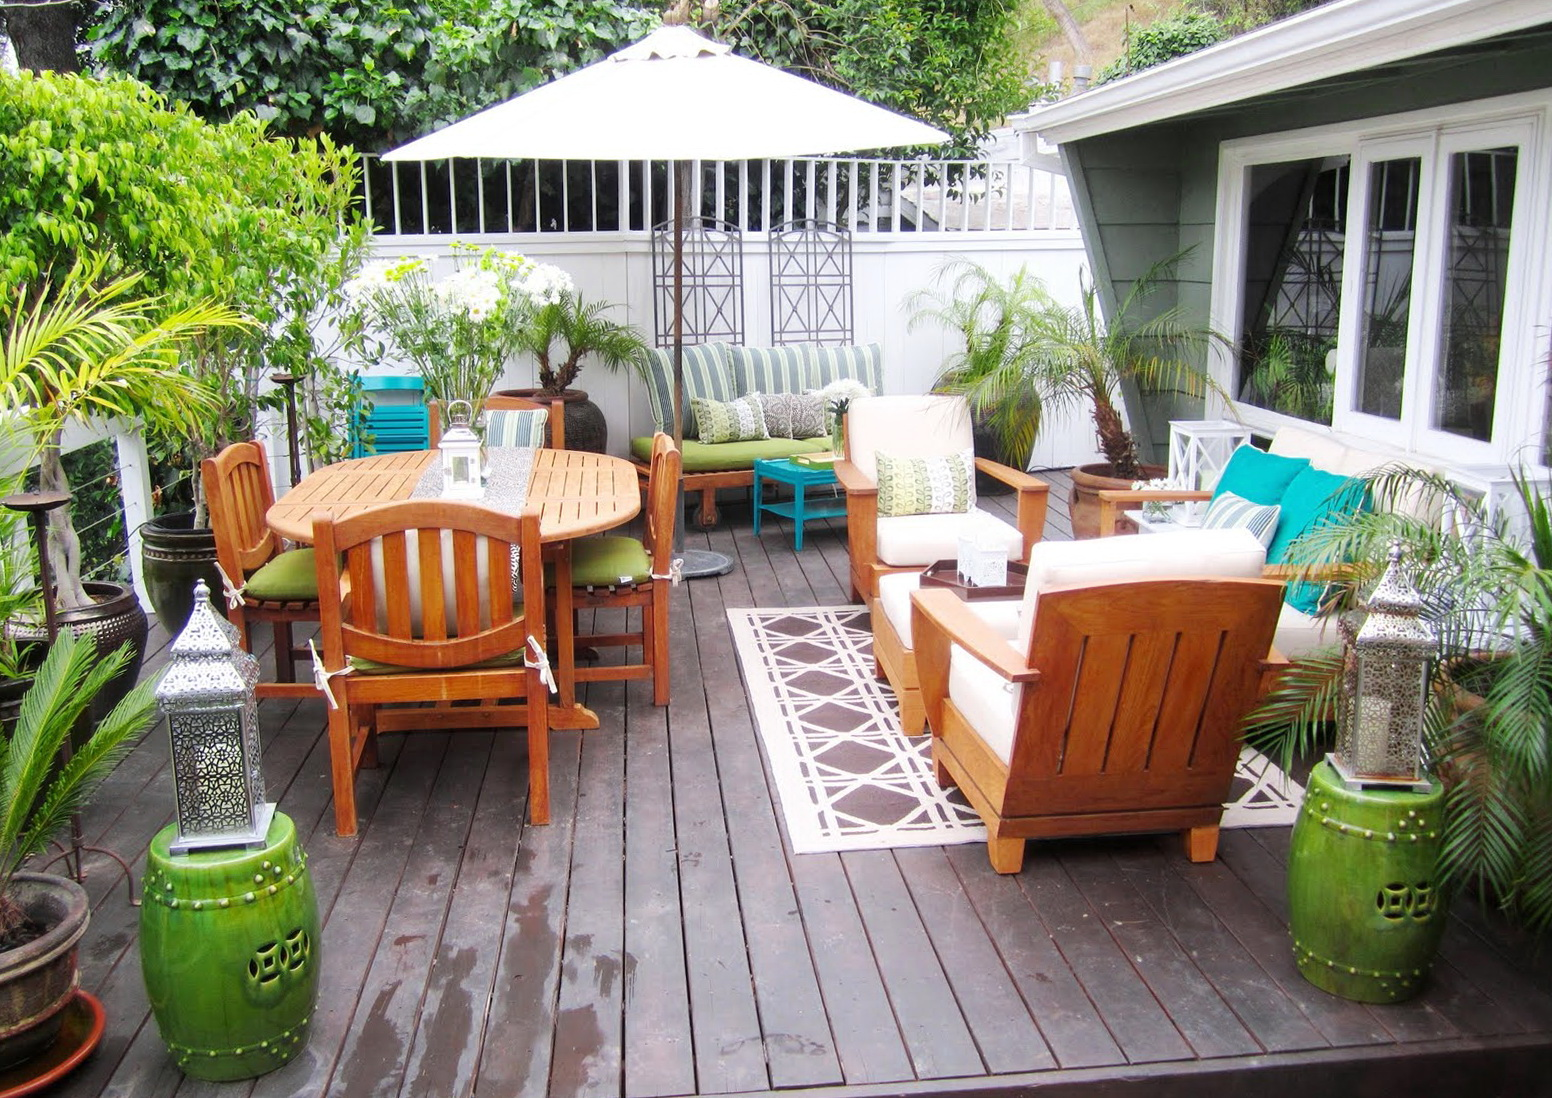 Screened In Porch Decorating Ideas On A Budget Plants